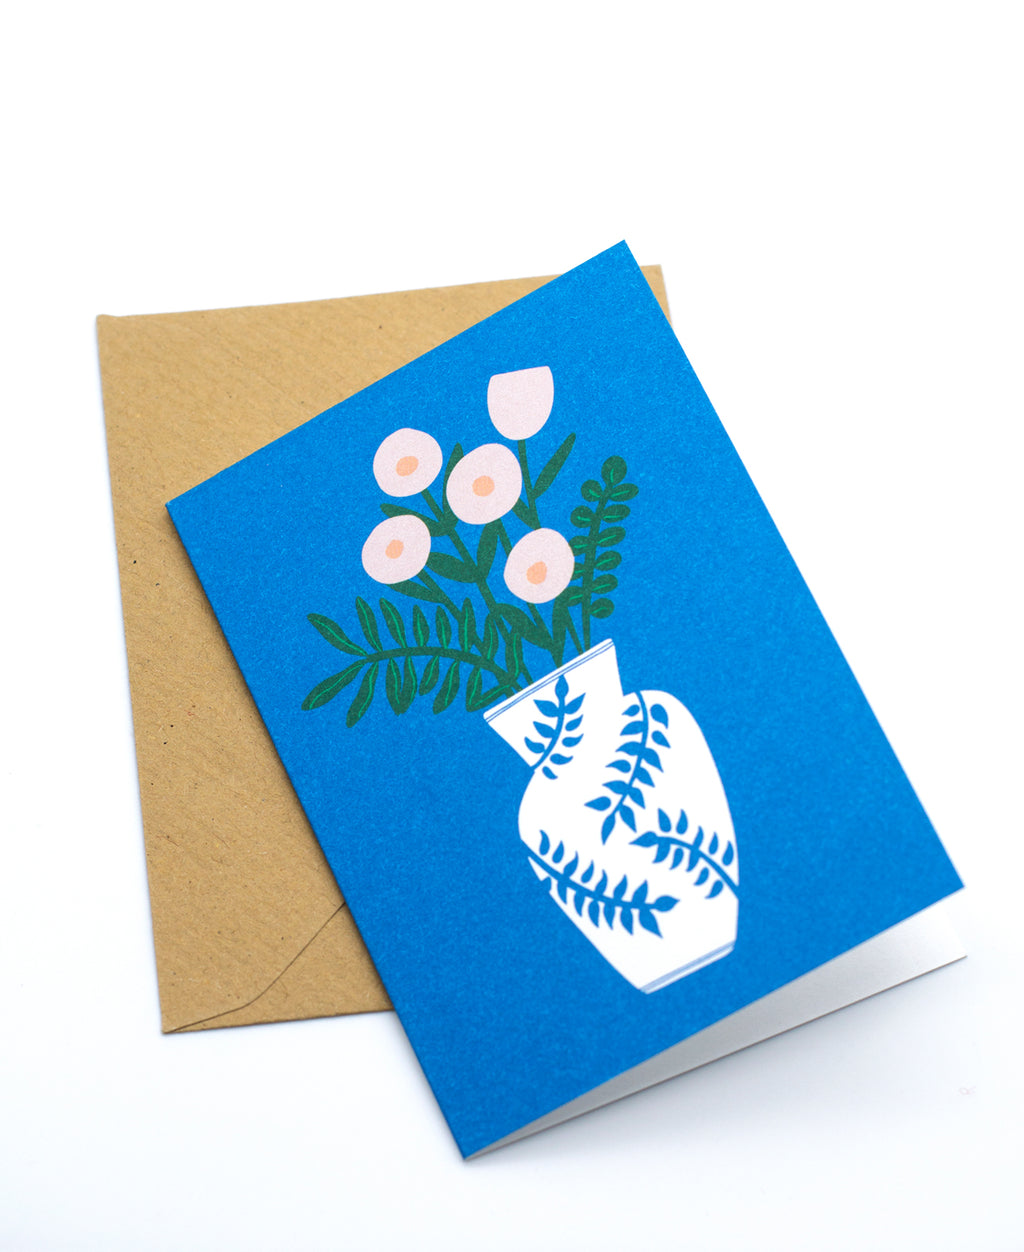 Kukkamaljakko mini greeting card + envelope